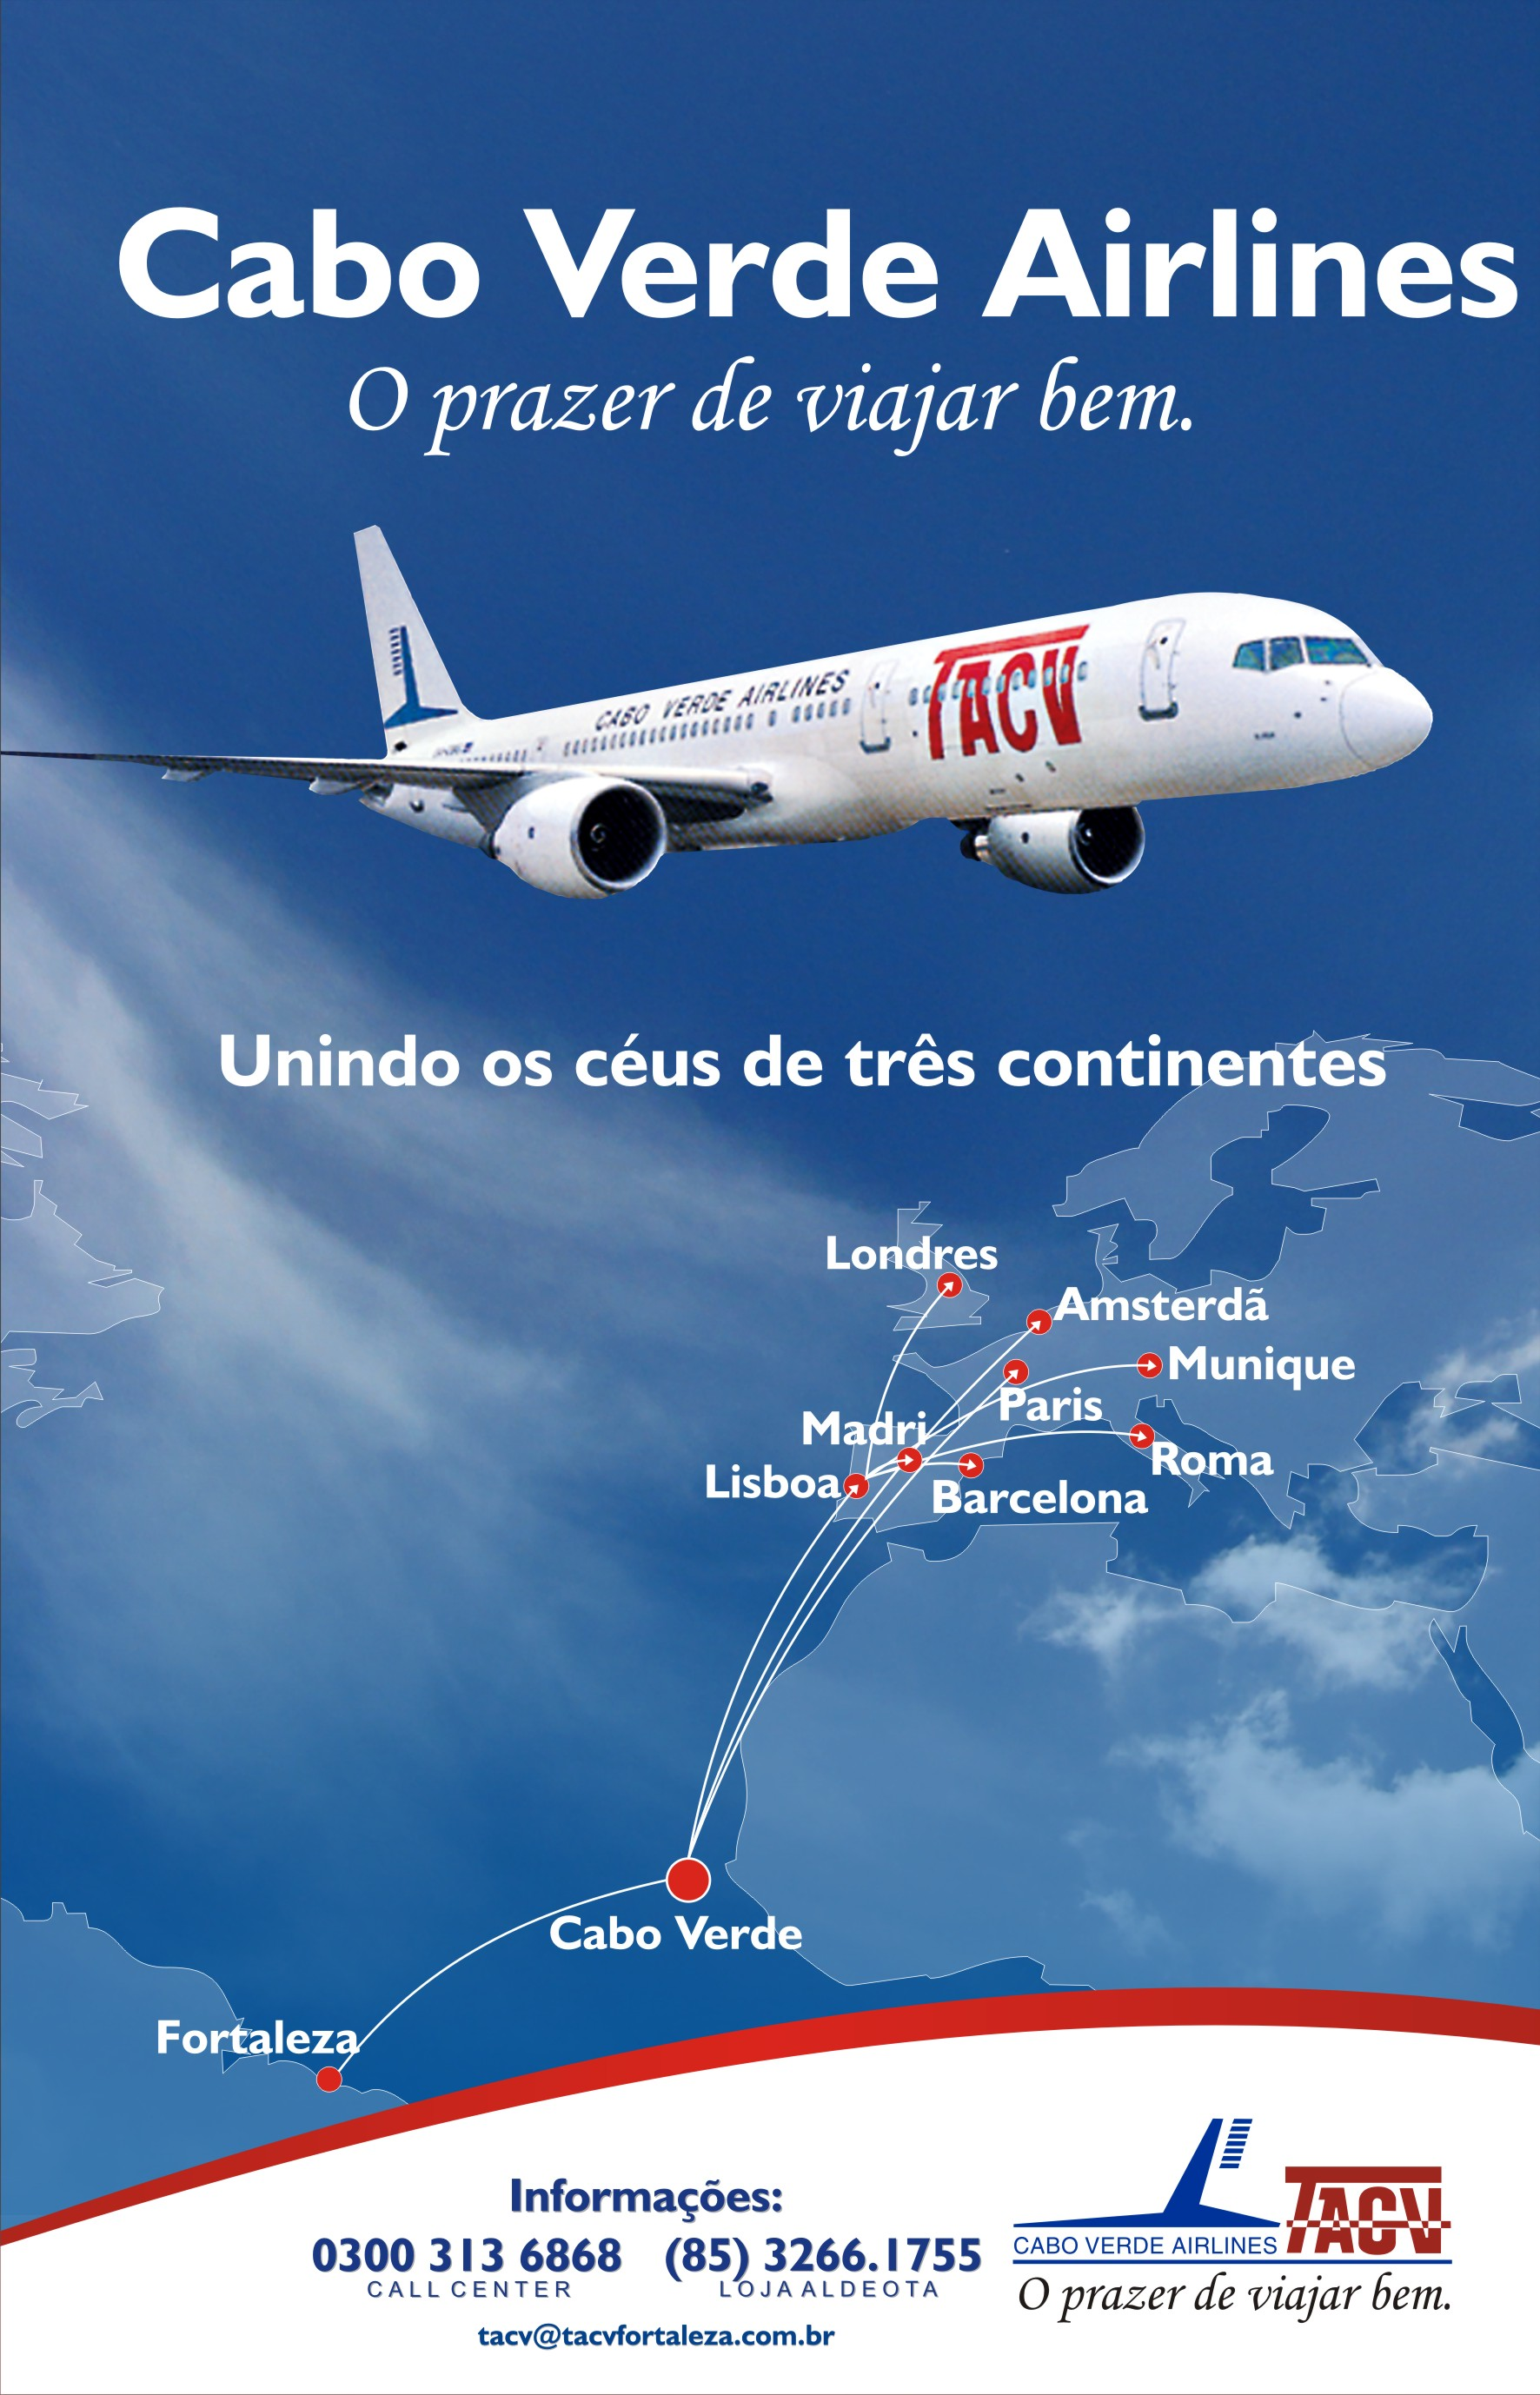 Poster design using corel draw - Poster 0 9 X 1 4m Tacv Year 2008 Client Tacv Cabo Verde Airlines Design Development Marina Braga Tolls Corel Draw And Adobe Photoshop